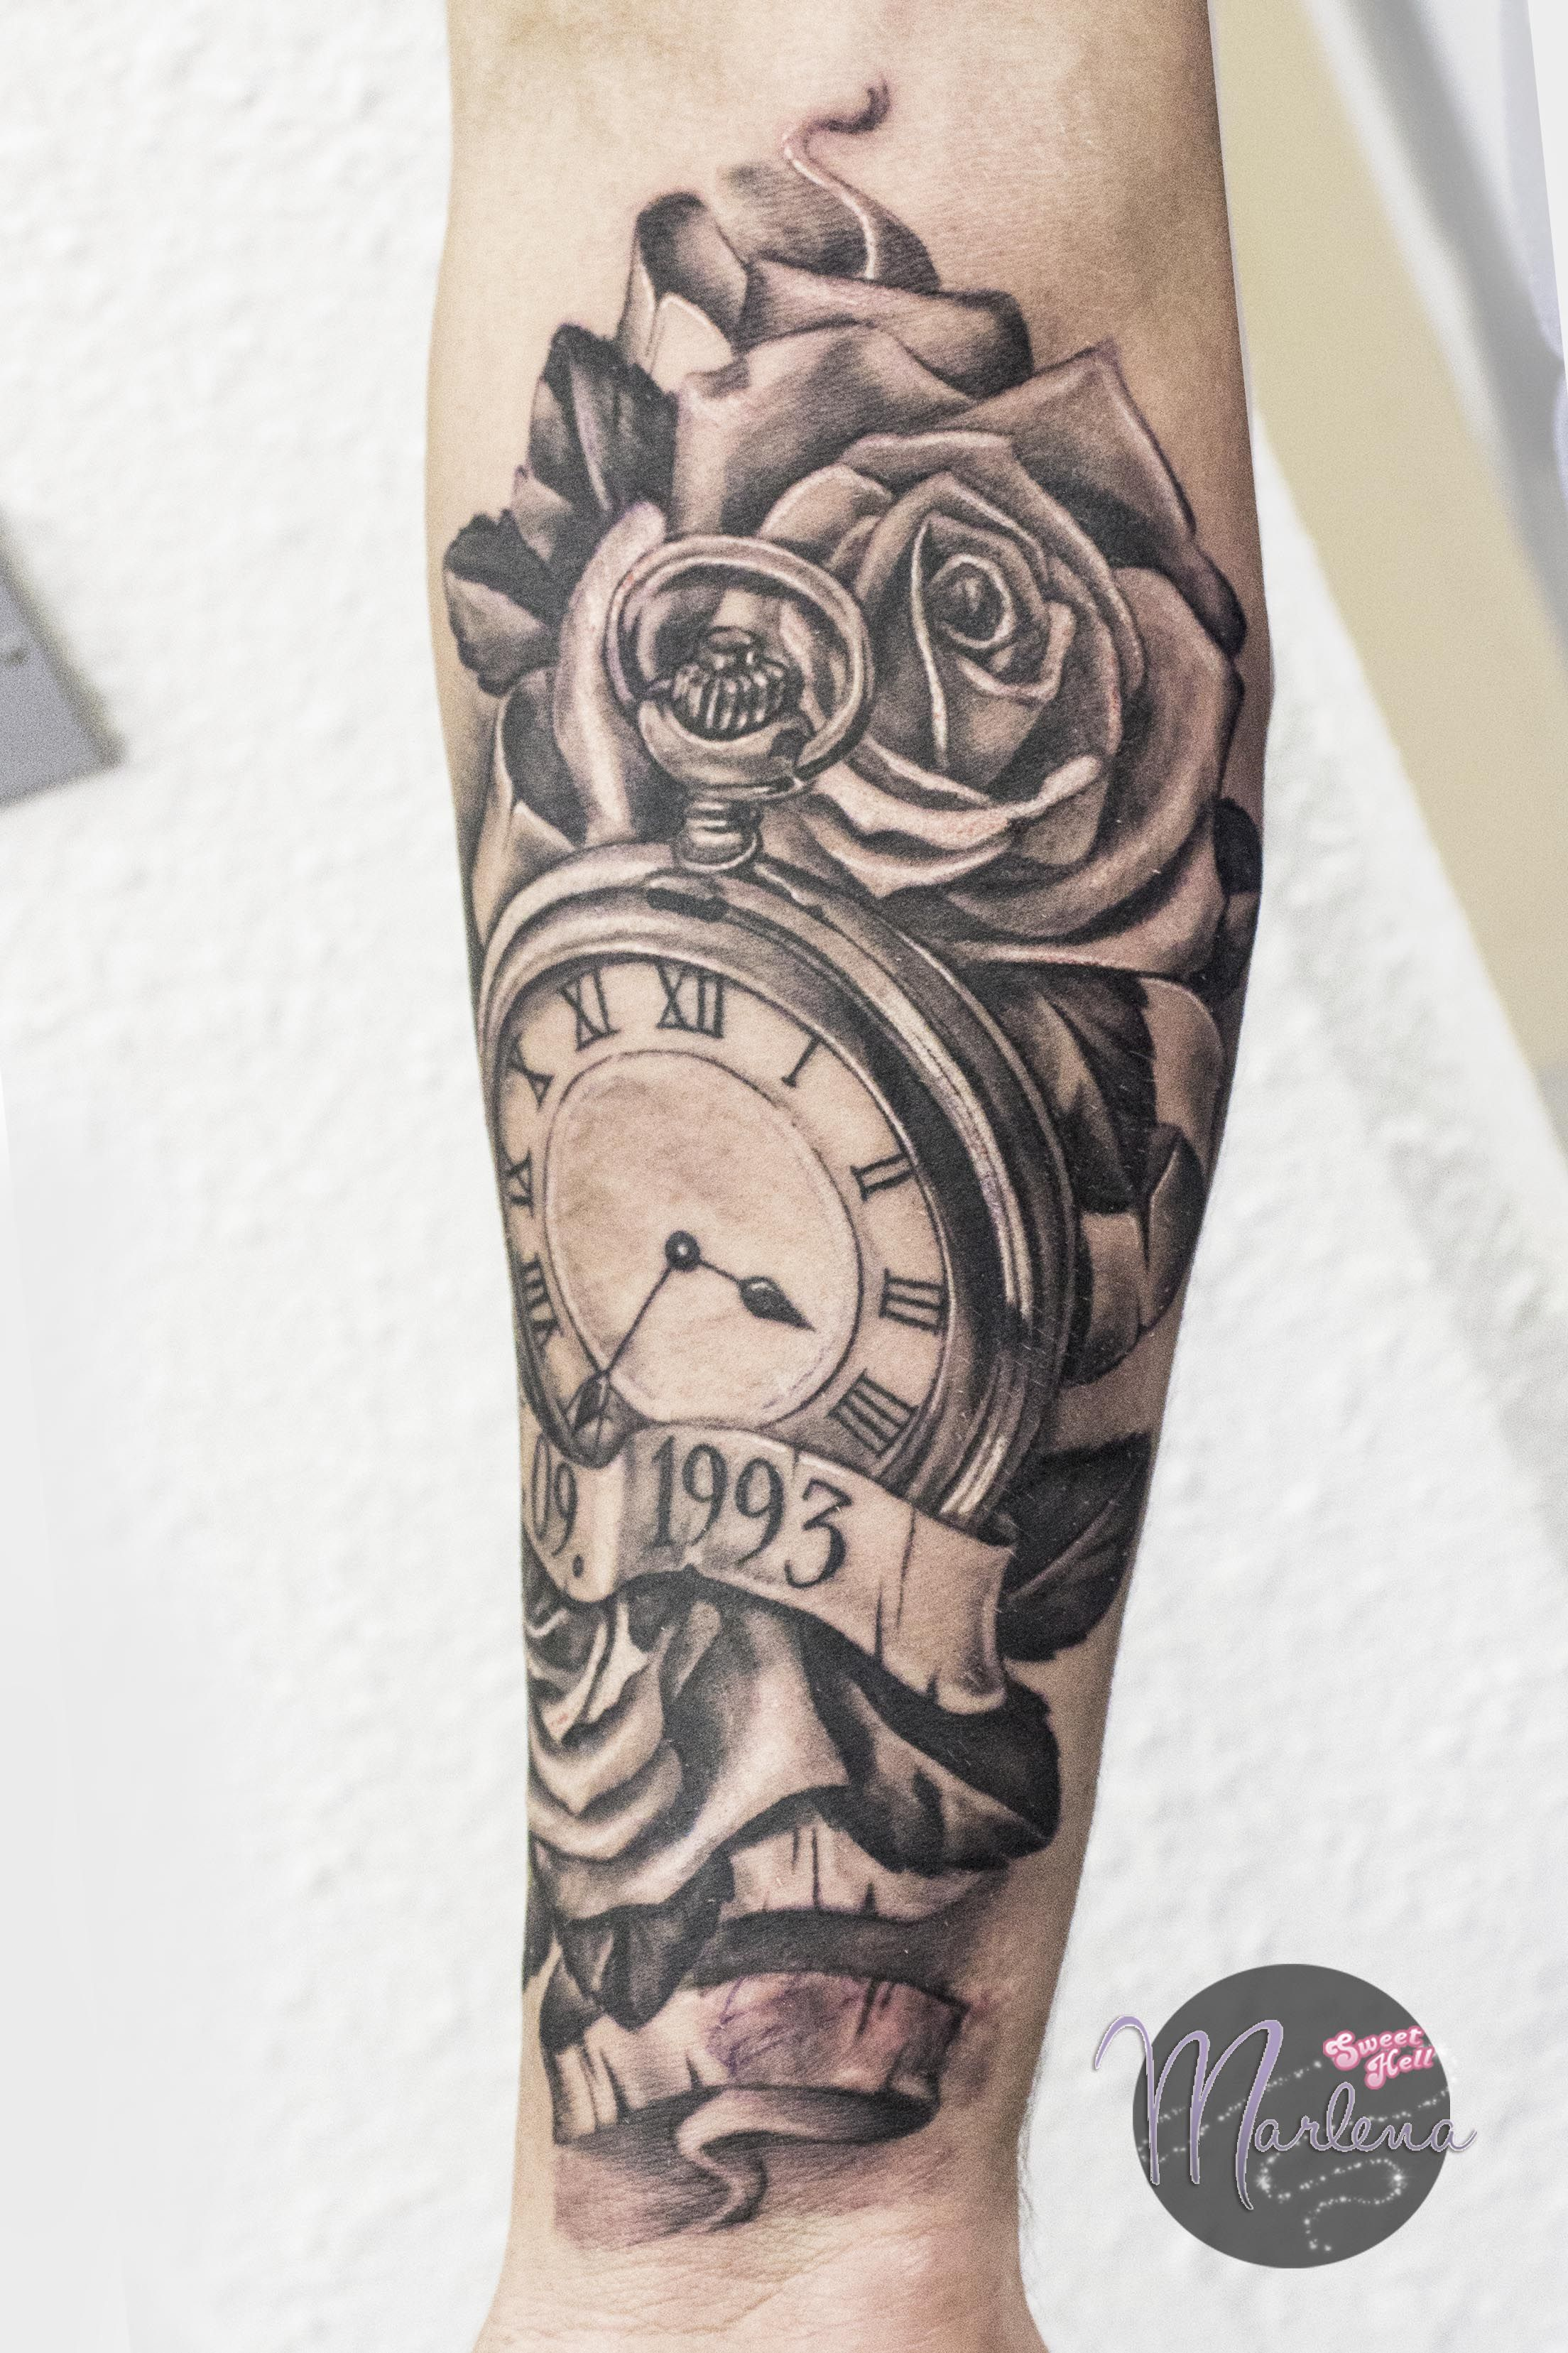 Clock forearm black rose sleeve tattoo - Memorial Tattoo Realistic Pocket Watch Roses And Birth Date Memorialtattoo Pocketwatch